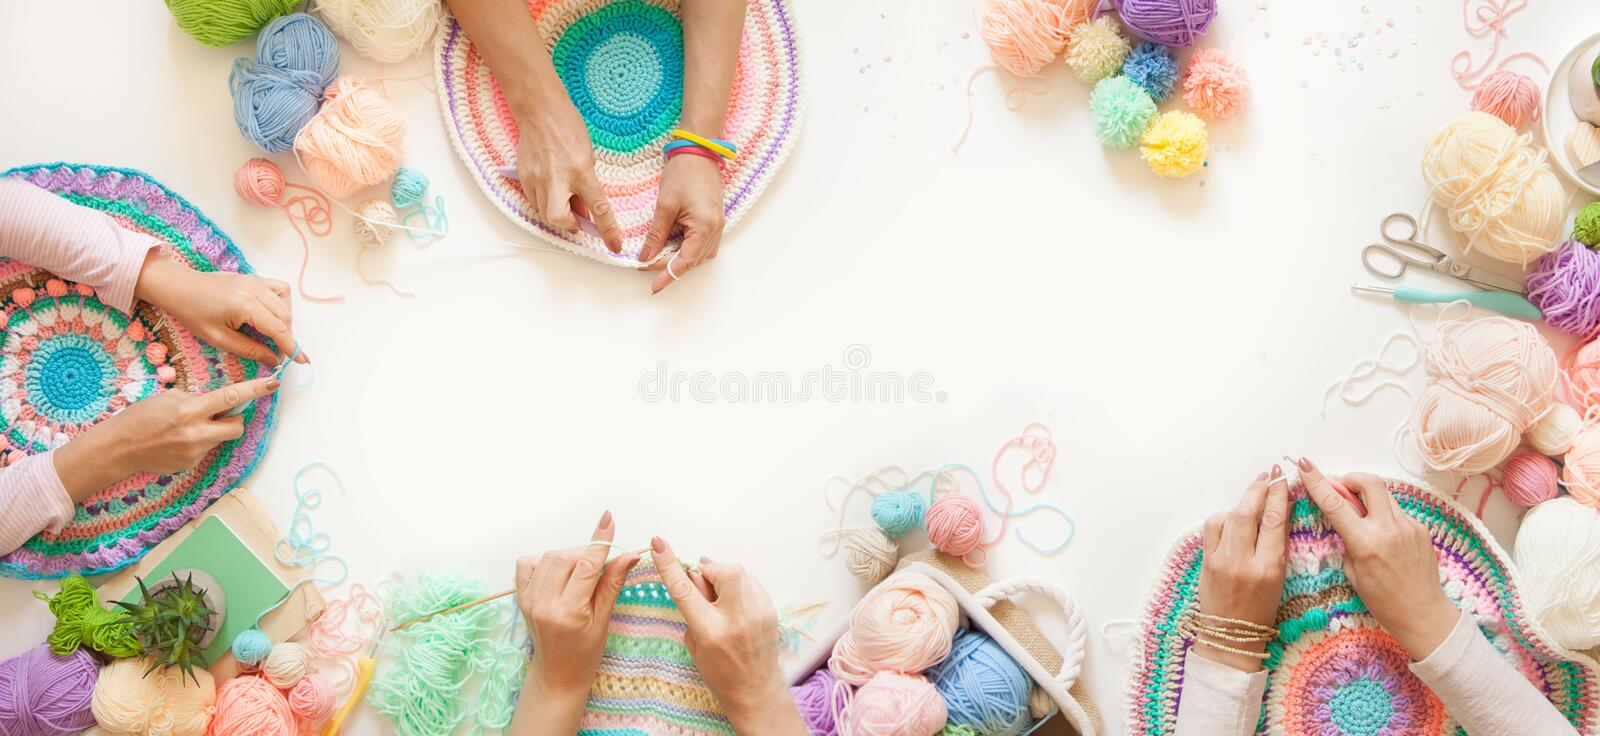 Master class on knitting. Women crochet and knit from colored yarn. Colored yarn. Women`s hands, Knitting needles, hooks, scissors and skeins of yarn vector illustration